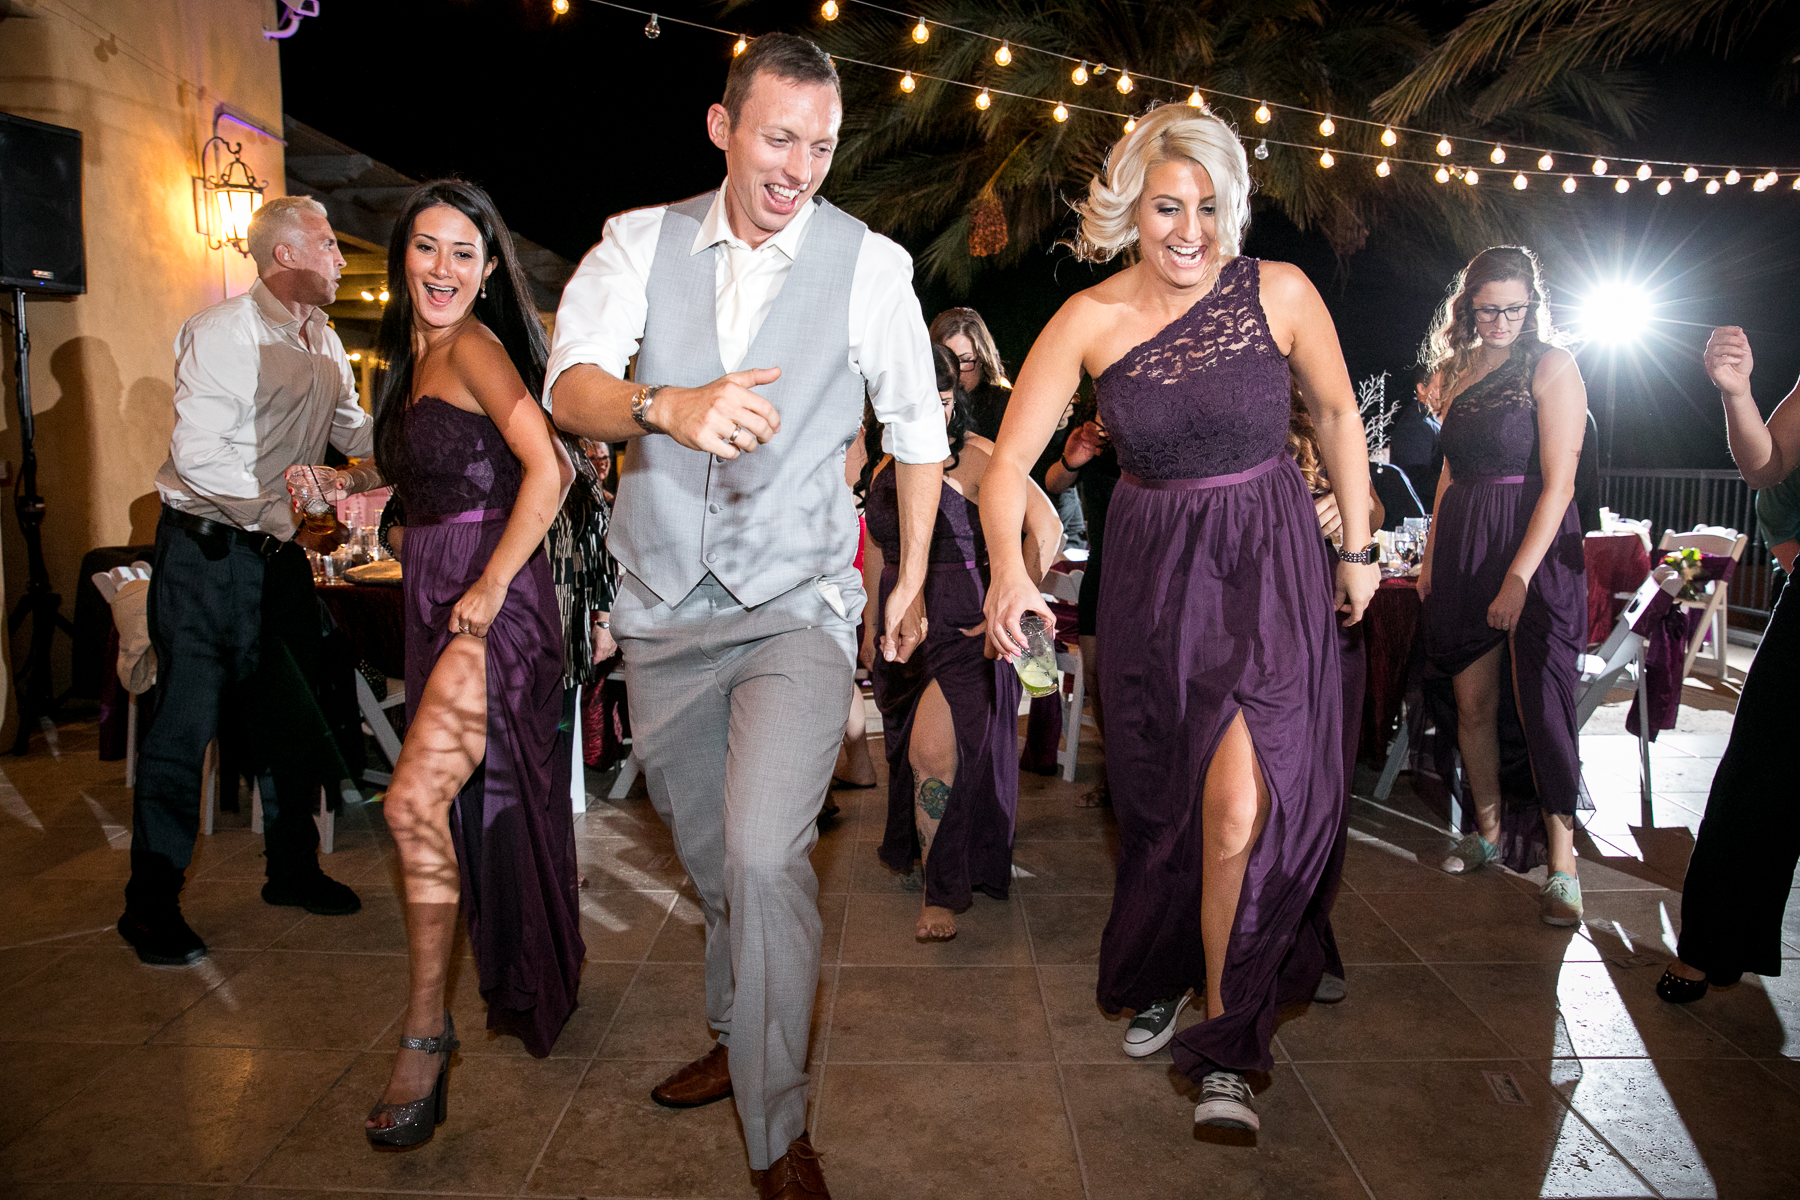 bridesmaids and groom dance at wedding at the retreat photographer